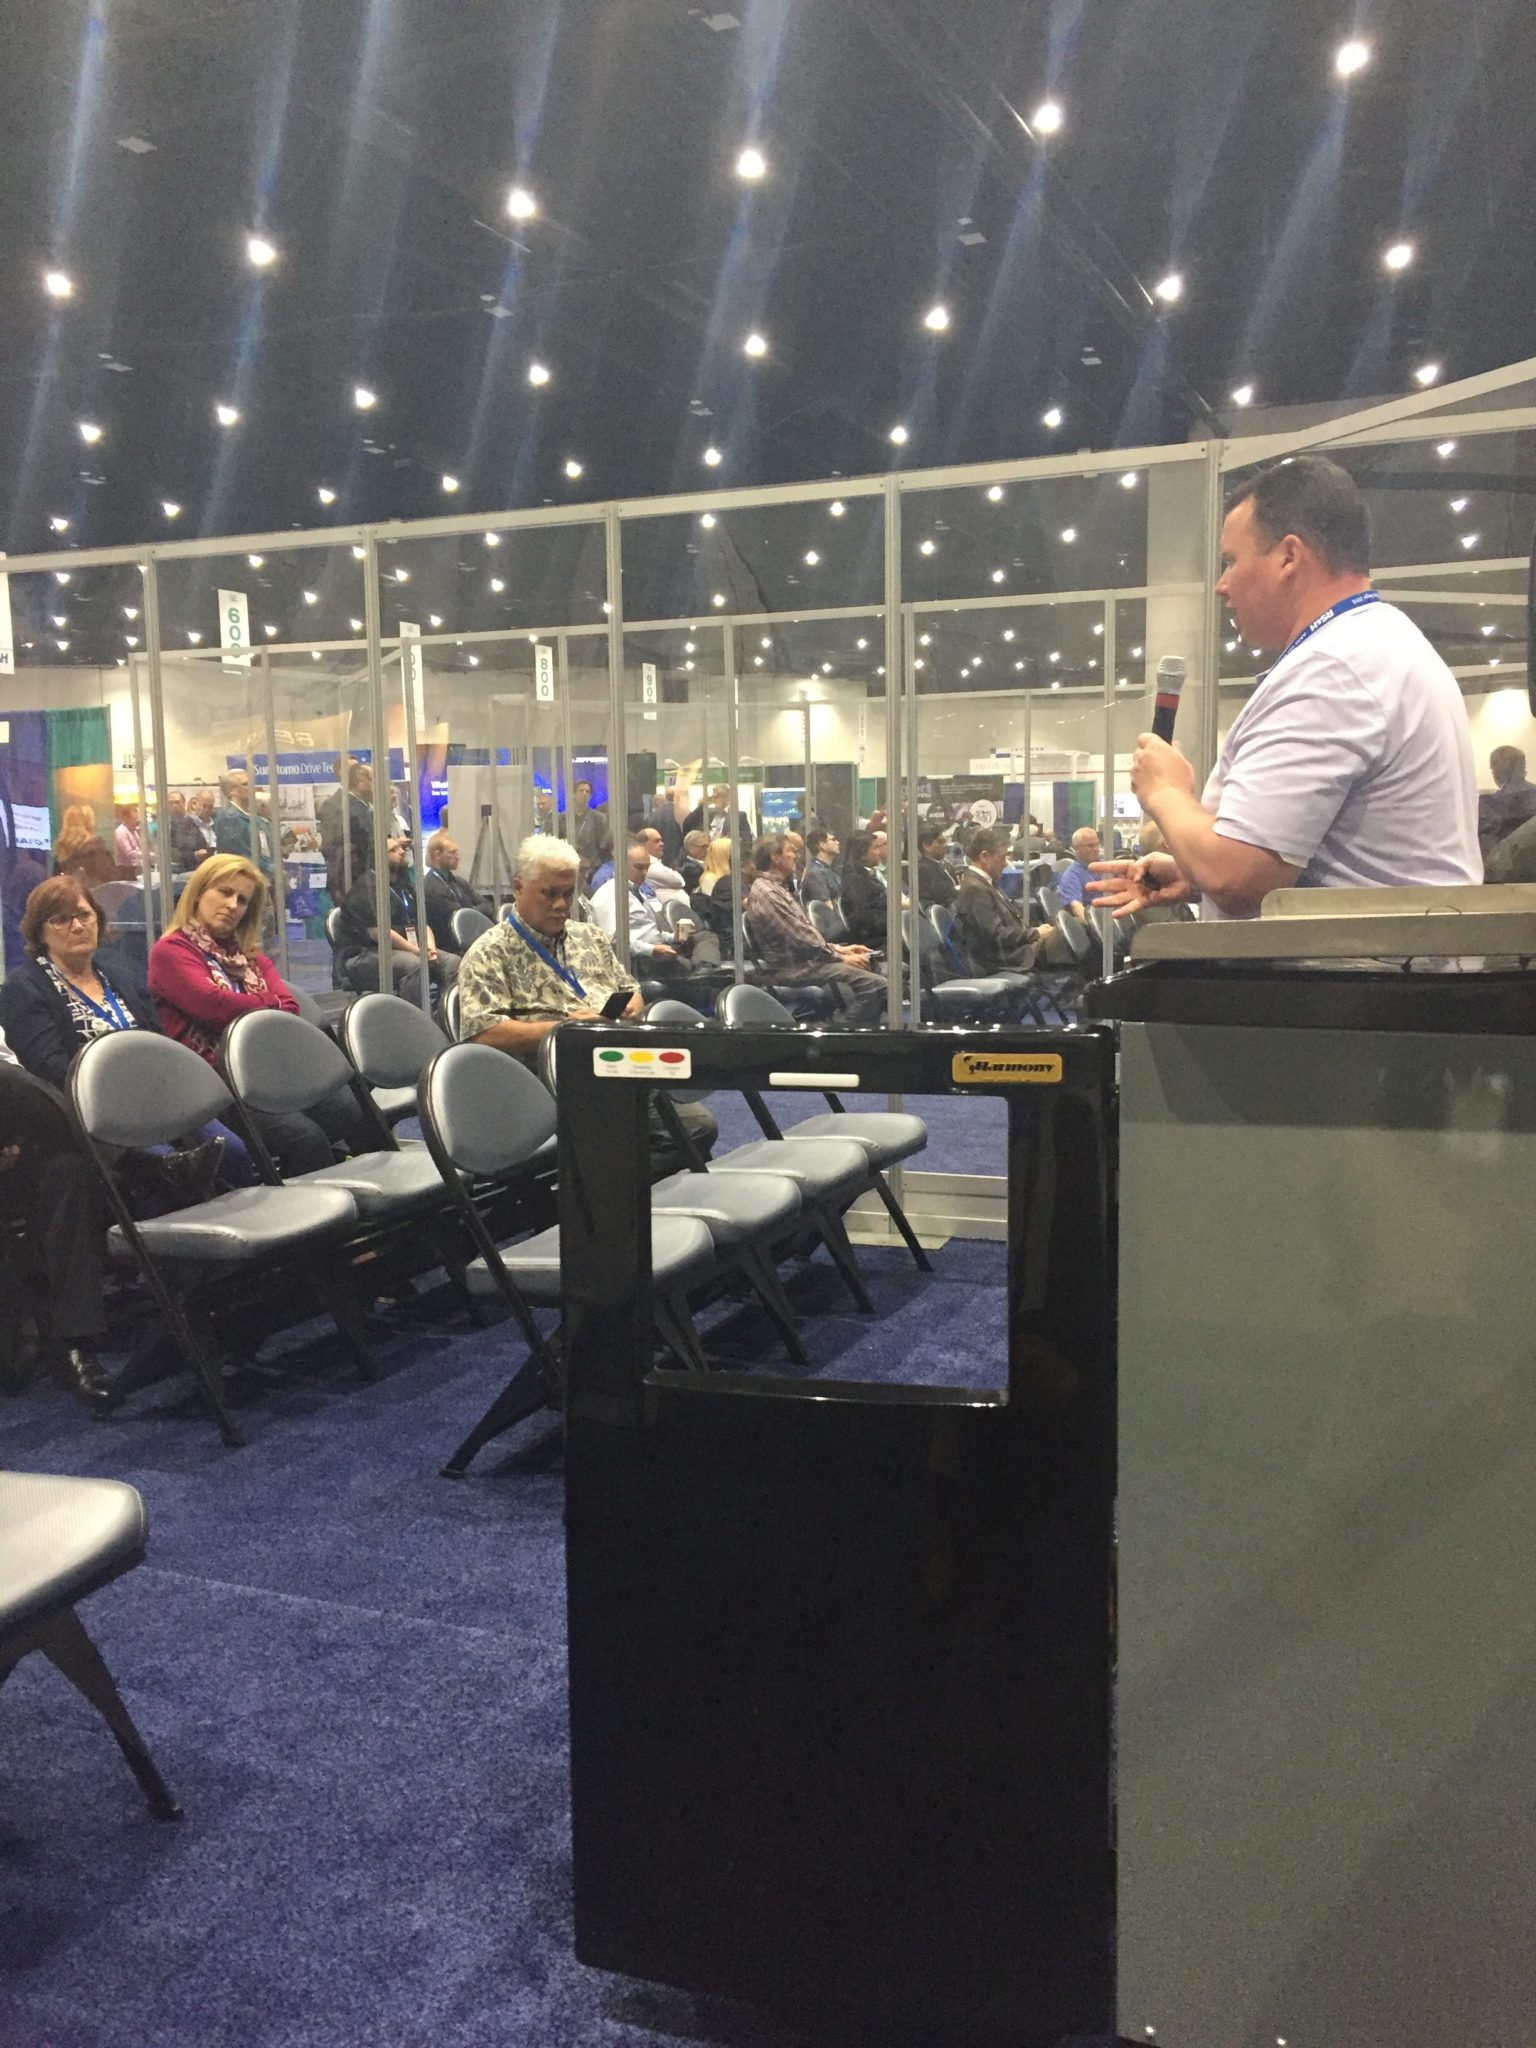 National Sales Manager, Nick Roberts, presents Harmony's solutions for airport waste at the Innovation Theater